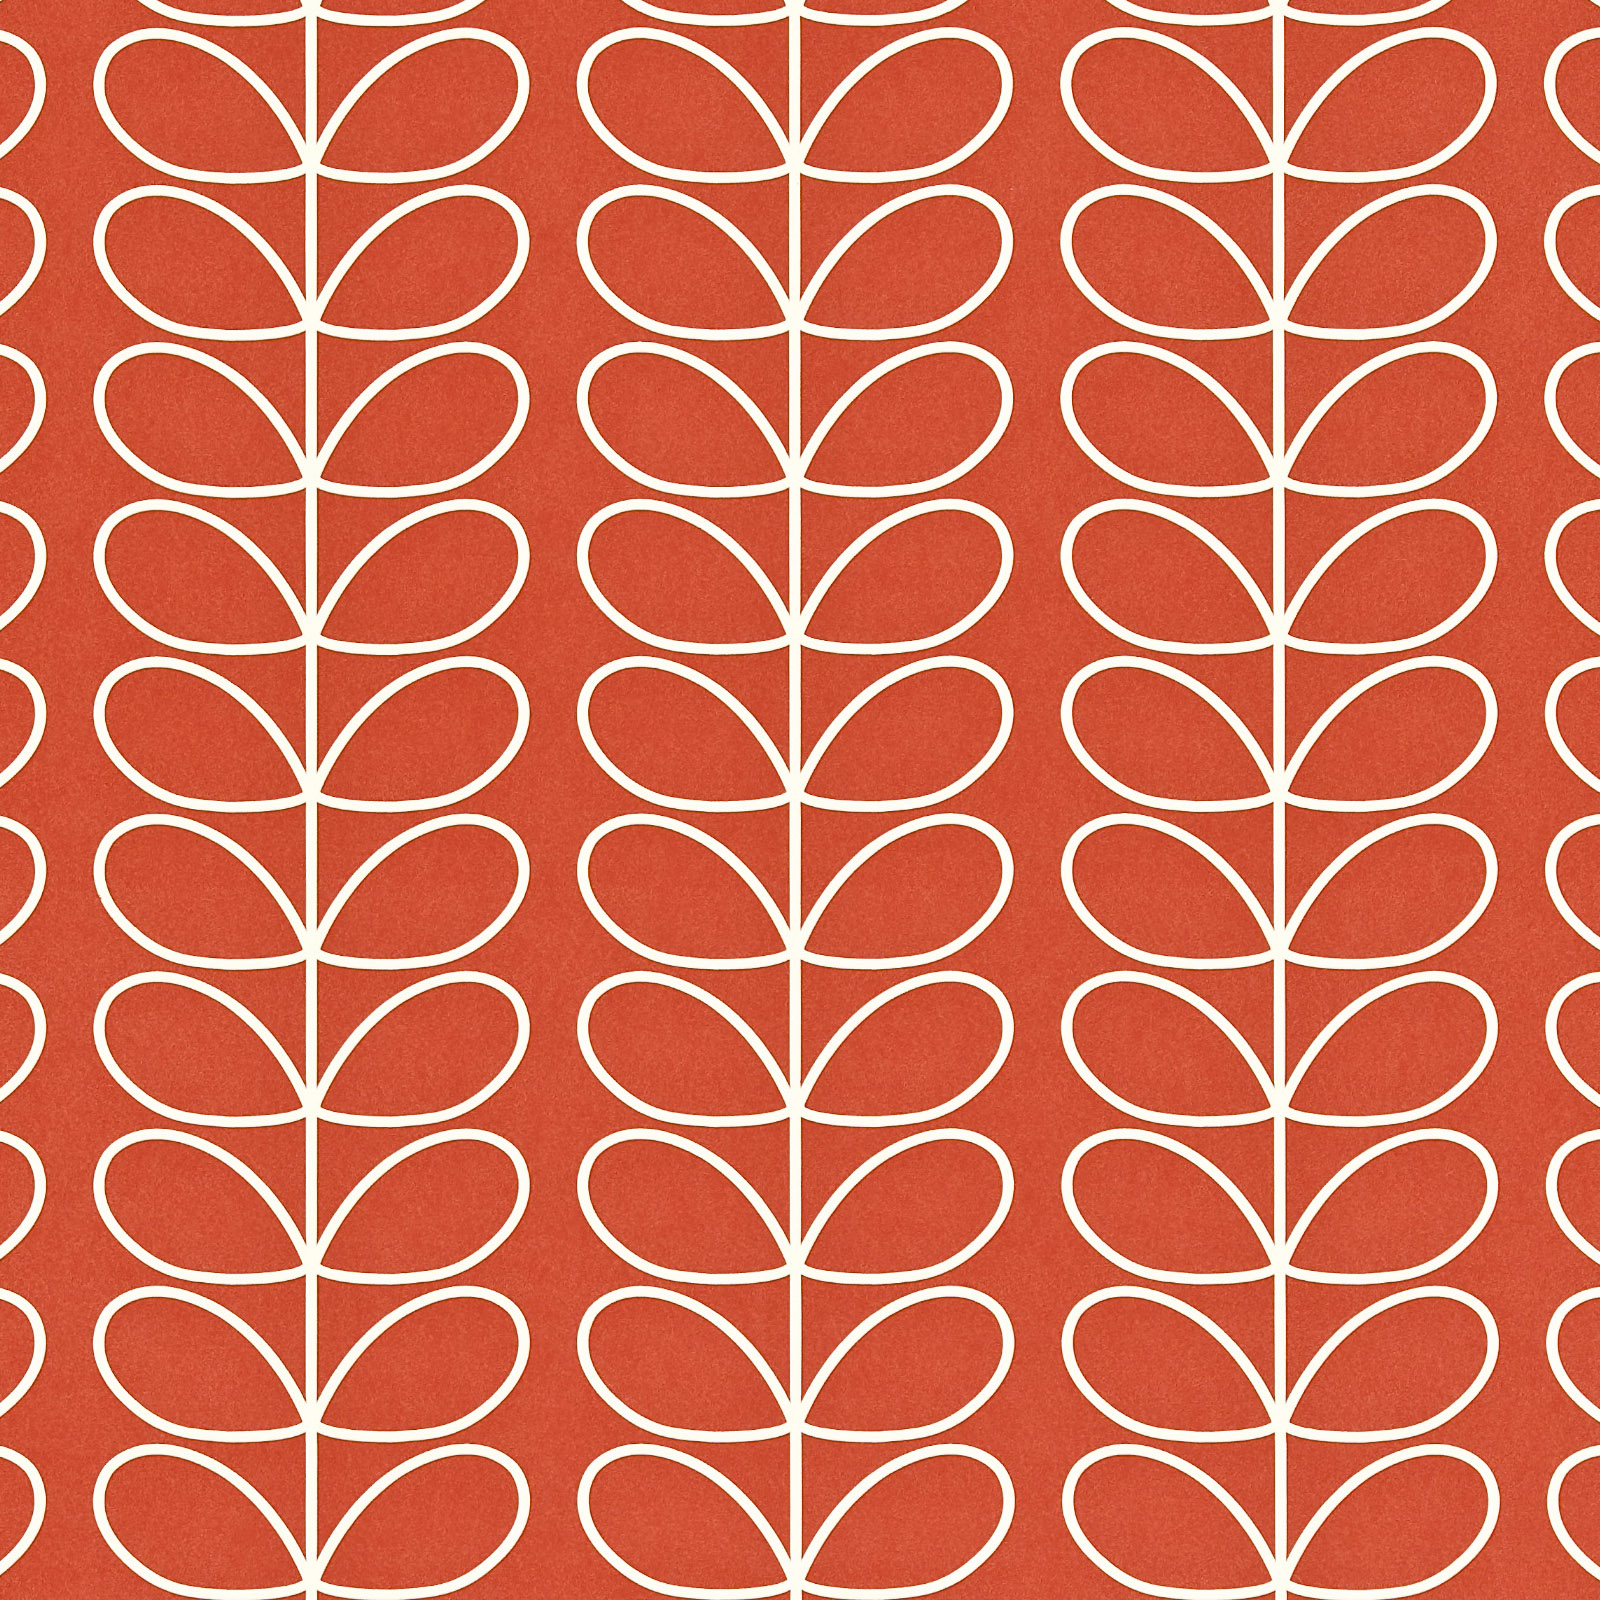 Orla Kiely Wallpaper Over Wallpaper Instructions View Original 1600x1600